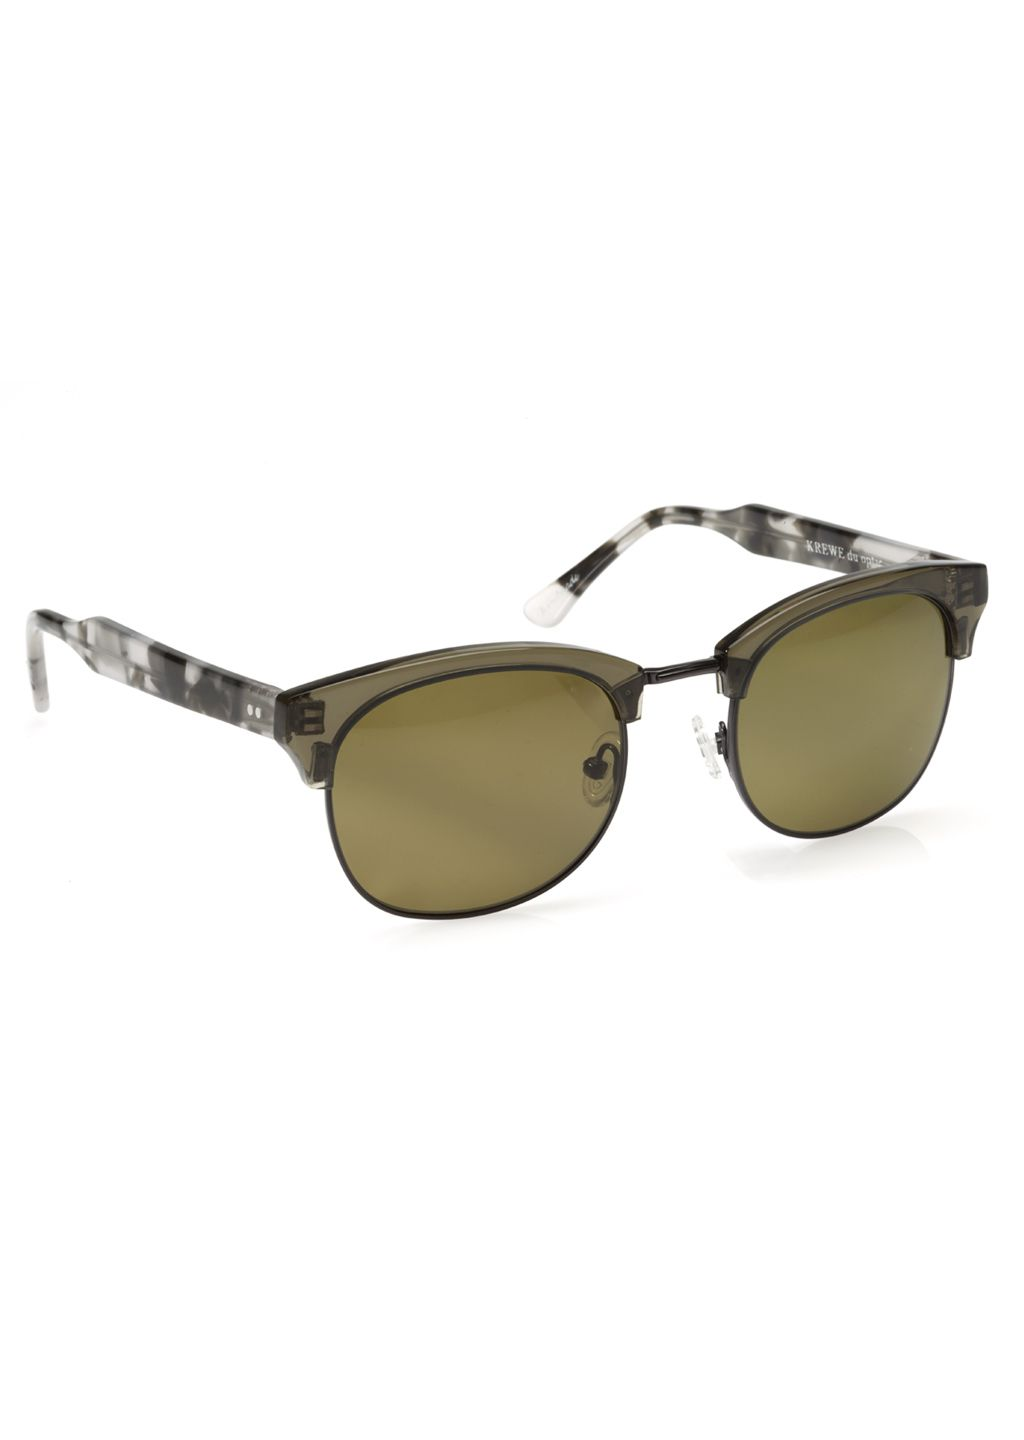 L•G•D | Olive Camo Polarized // sunglasses for square face shapes